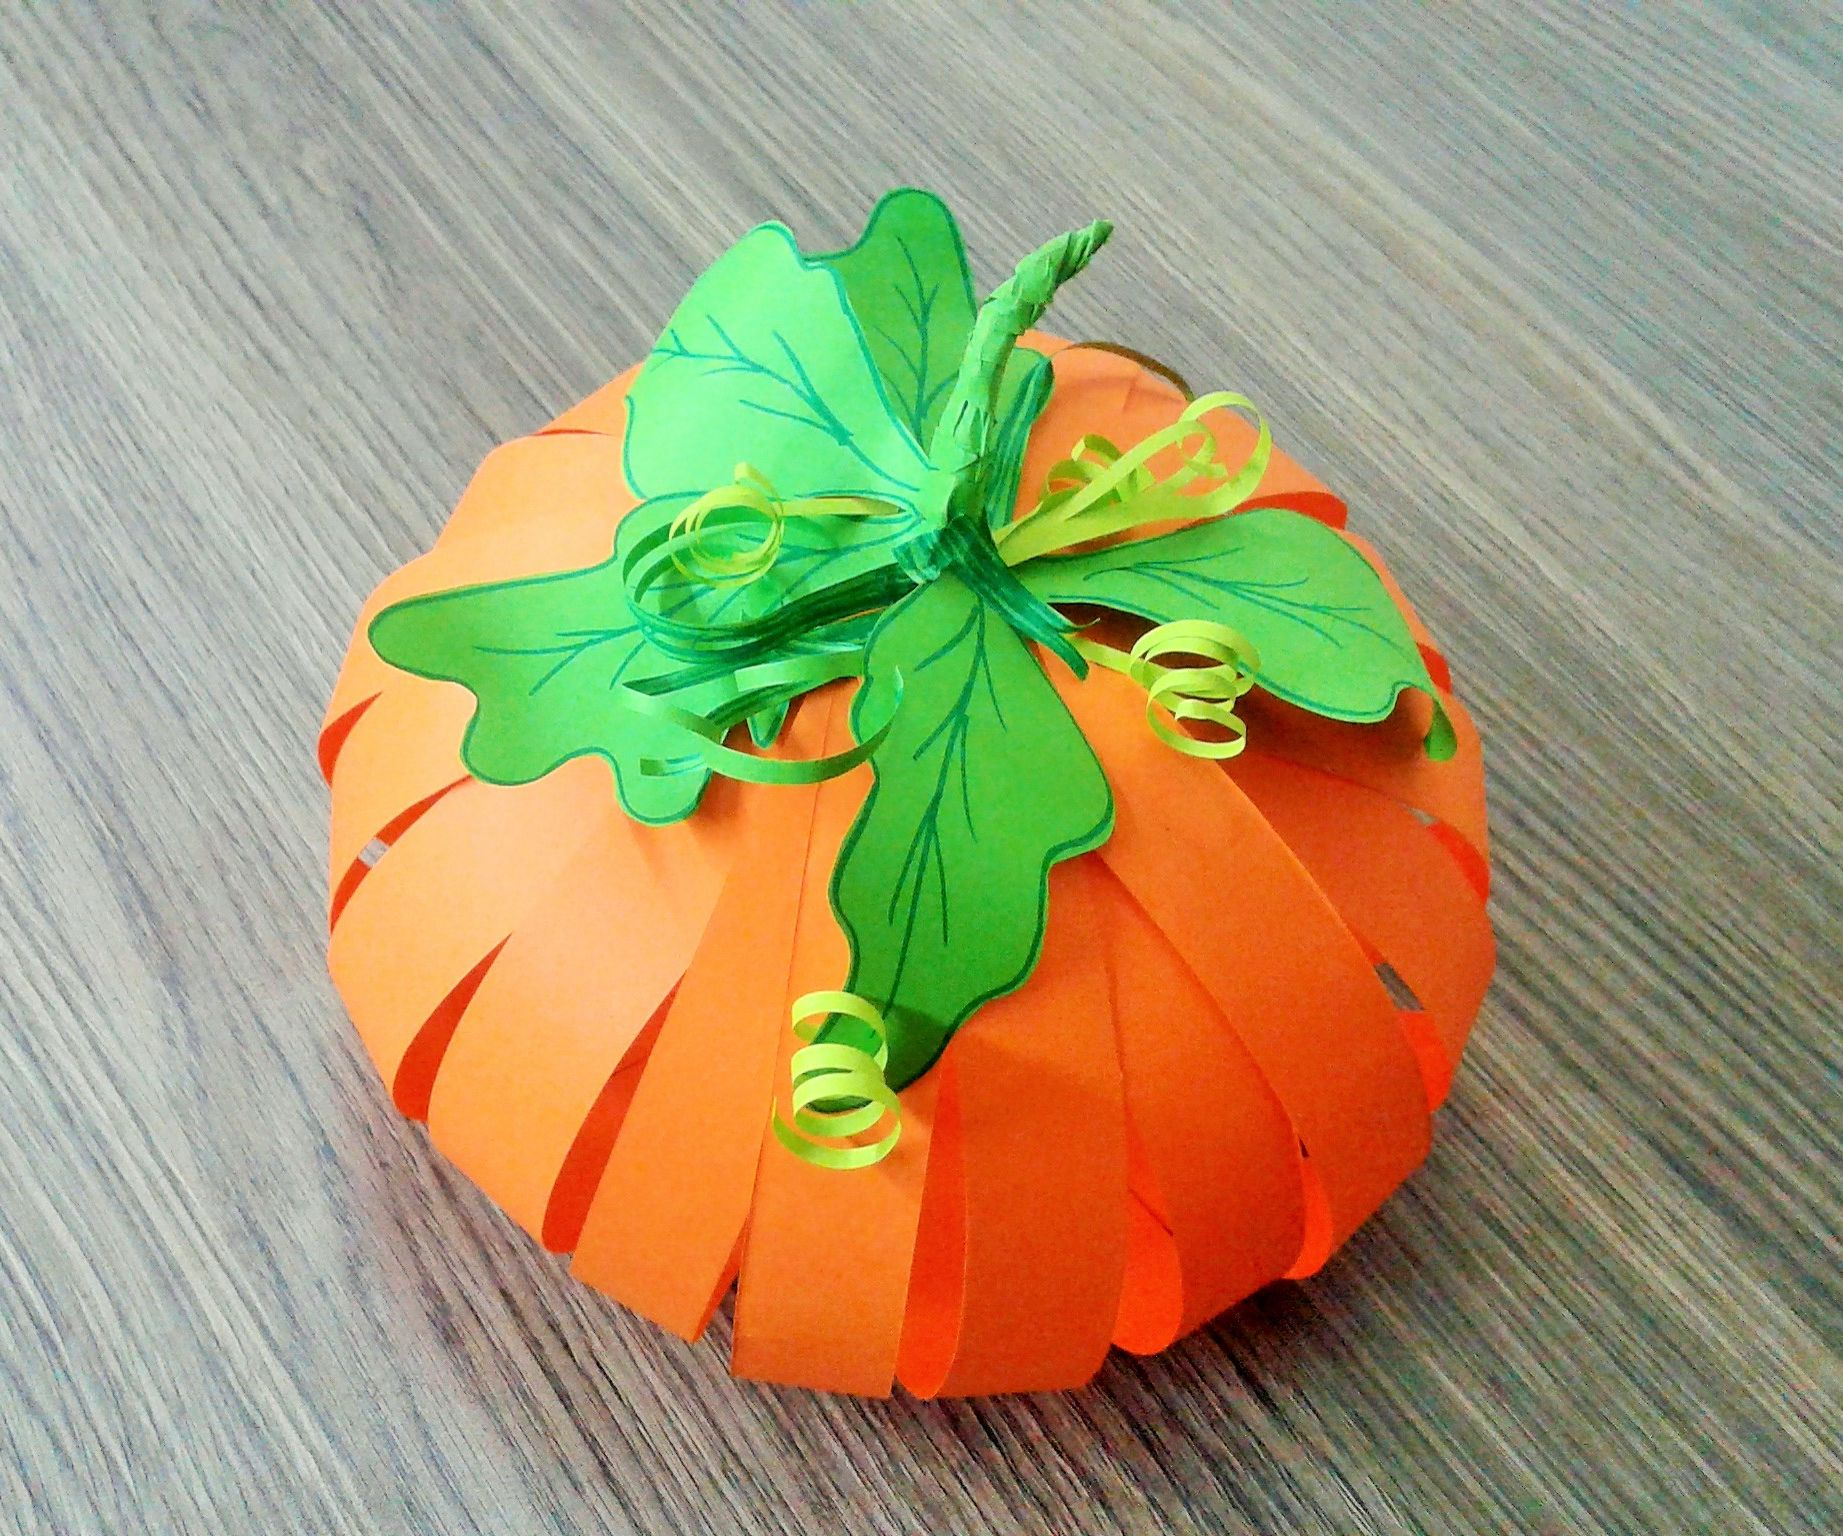 How to Make Paper Pumpkin